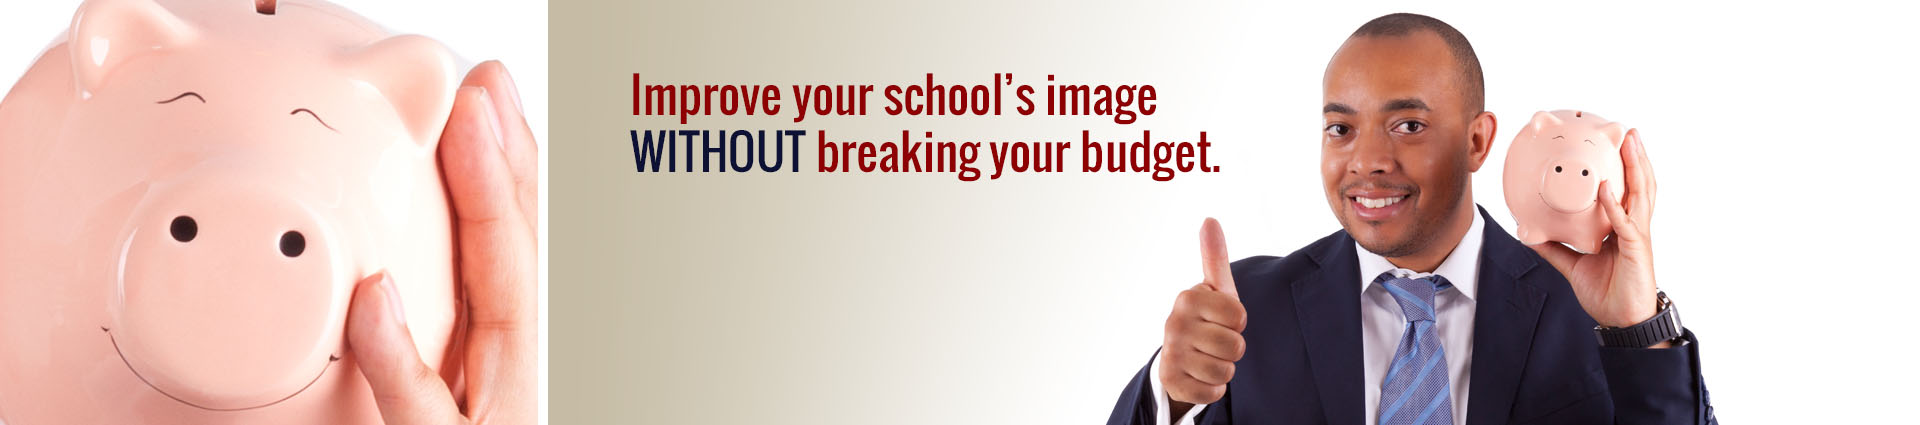 Improve your school's image.